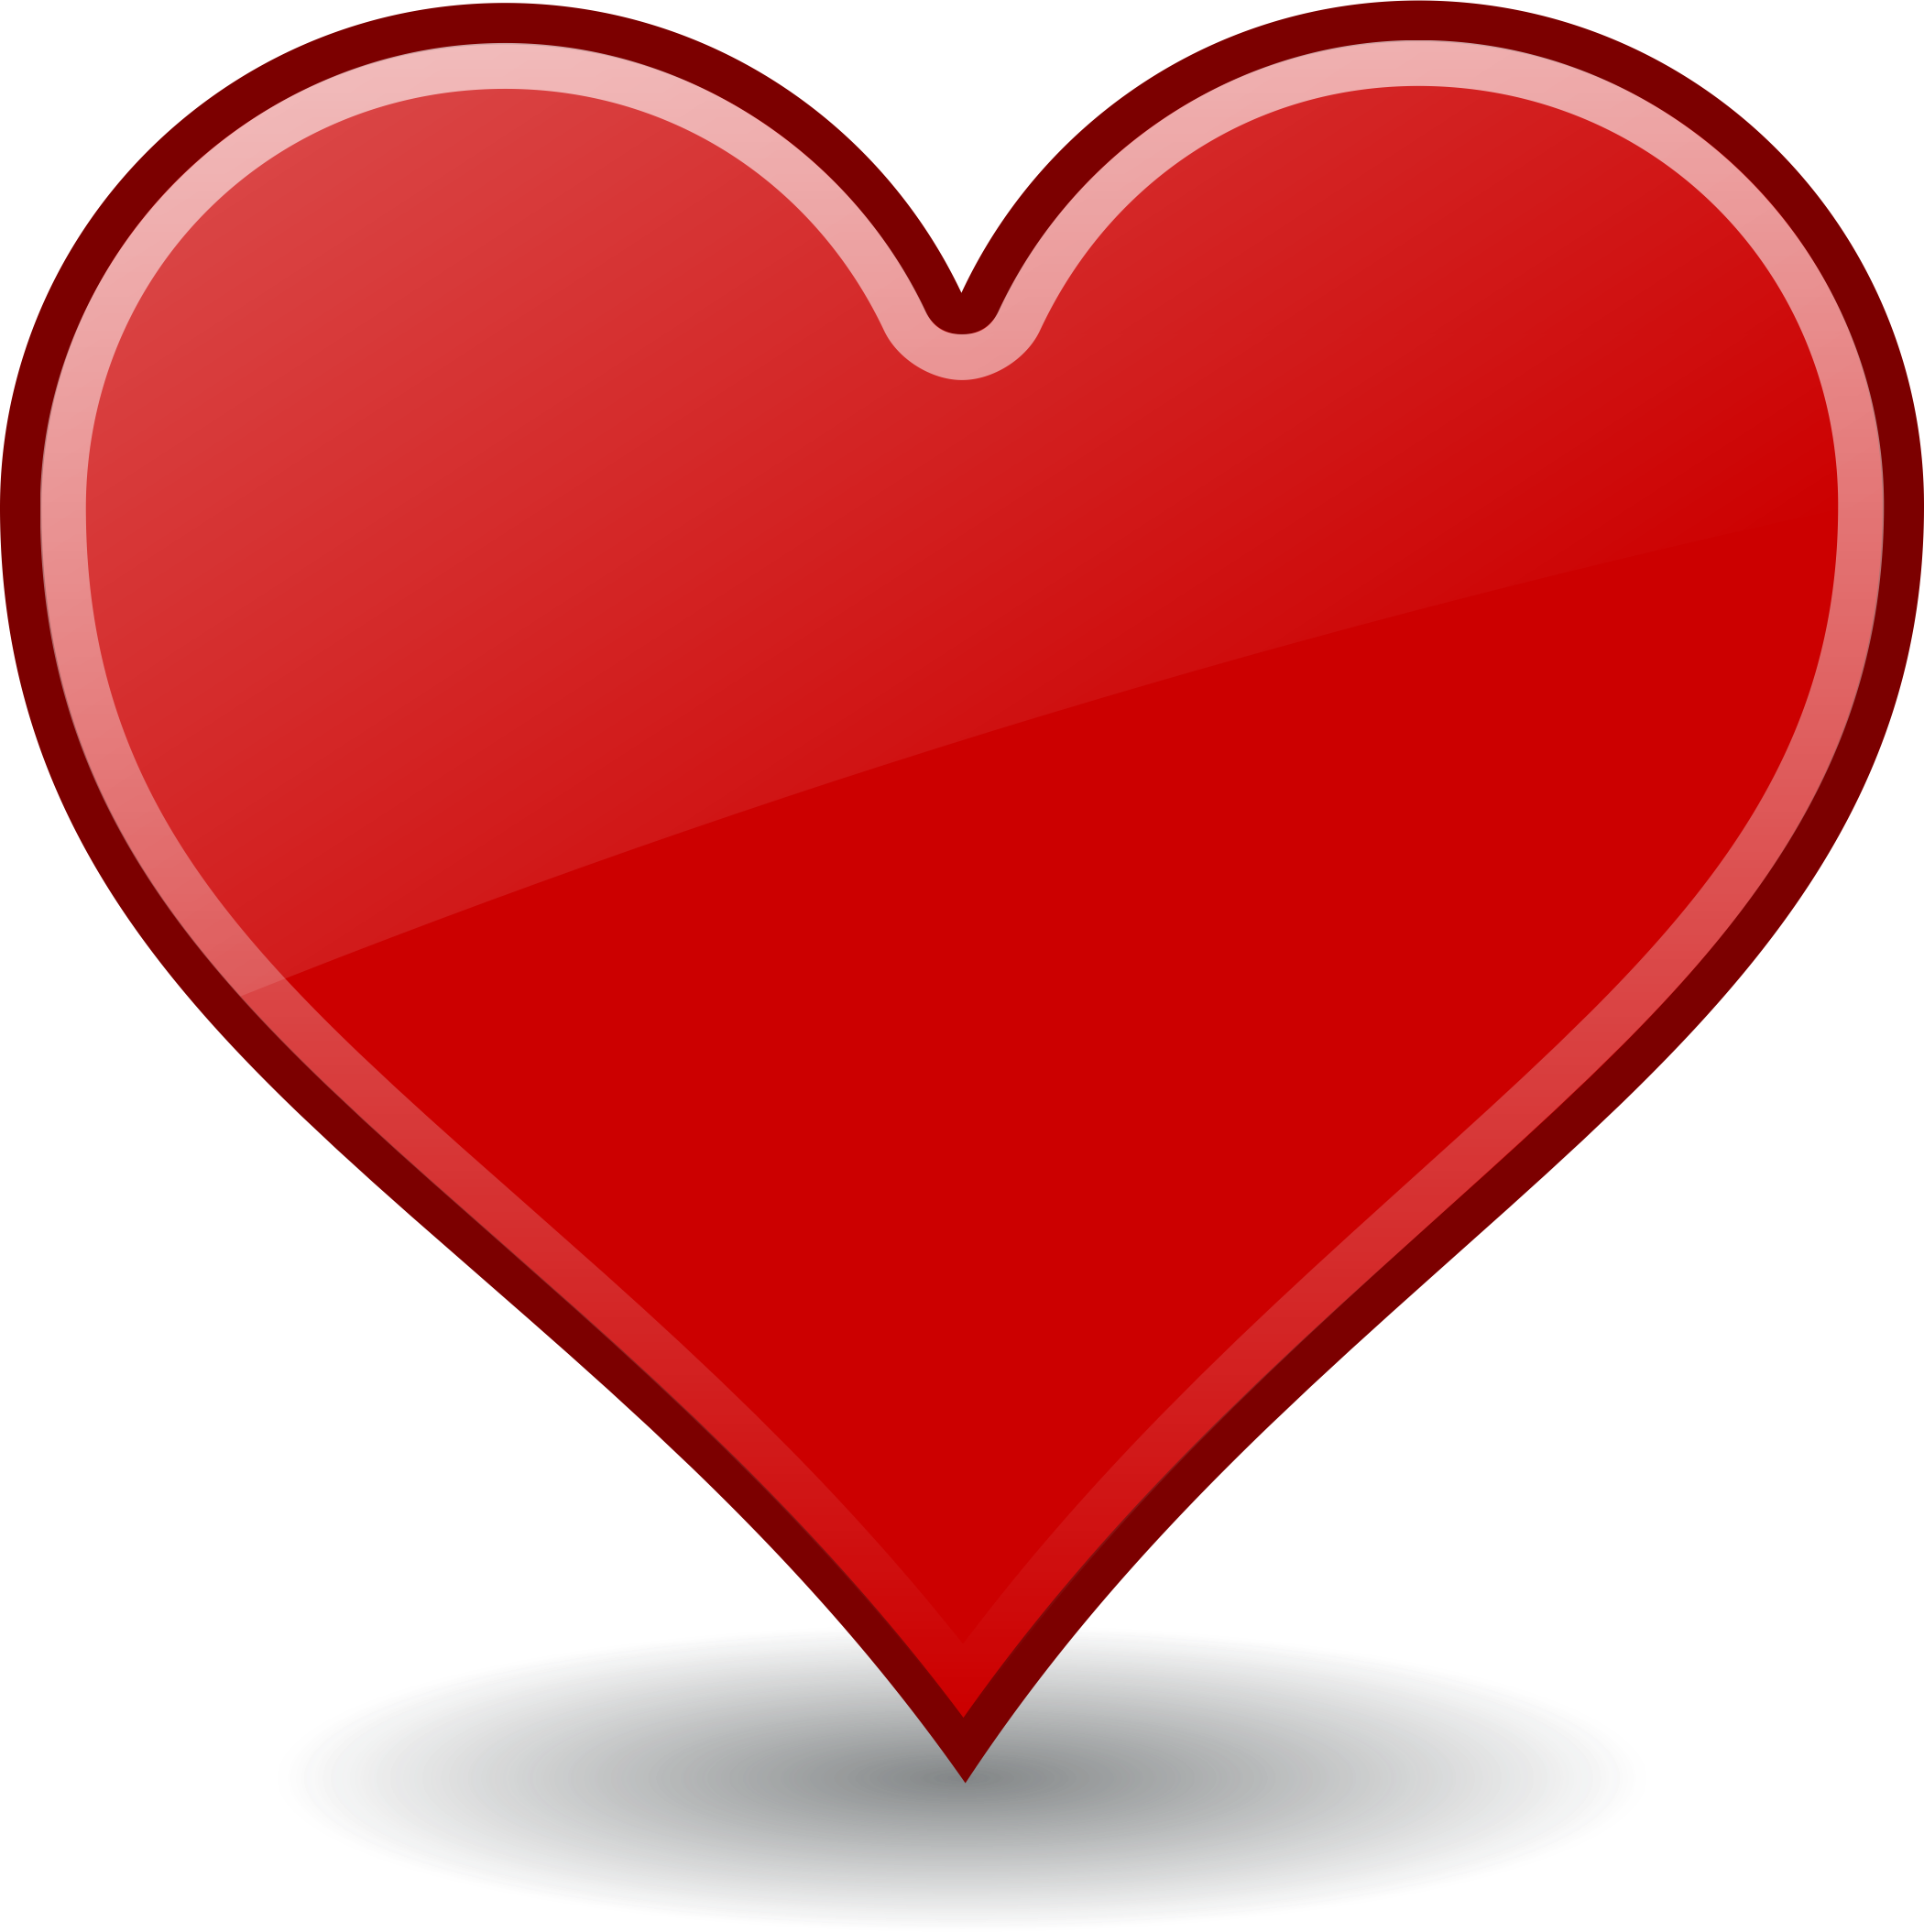 heart icon by sixsixfive